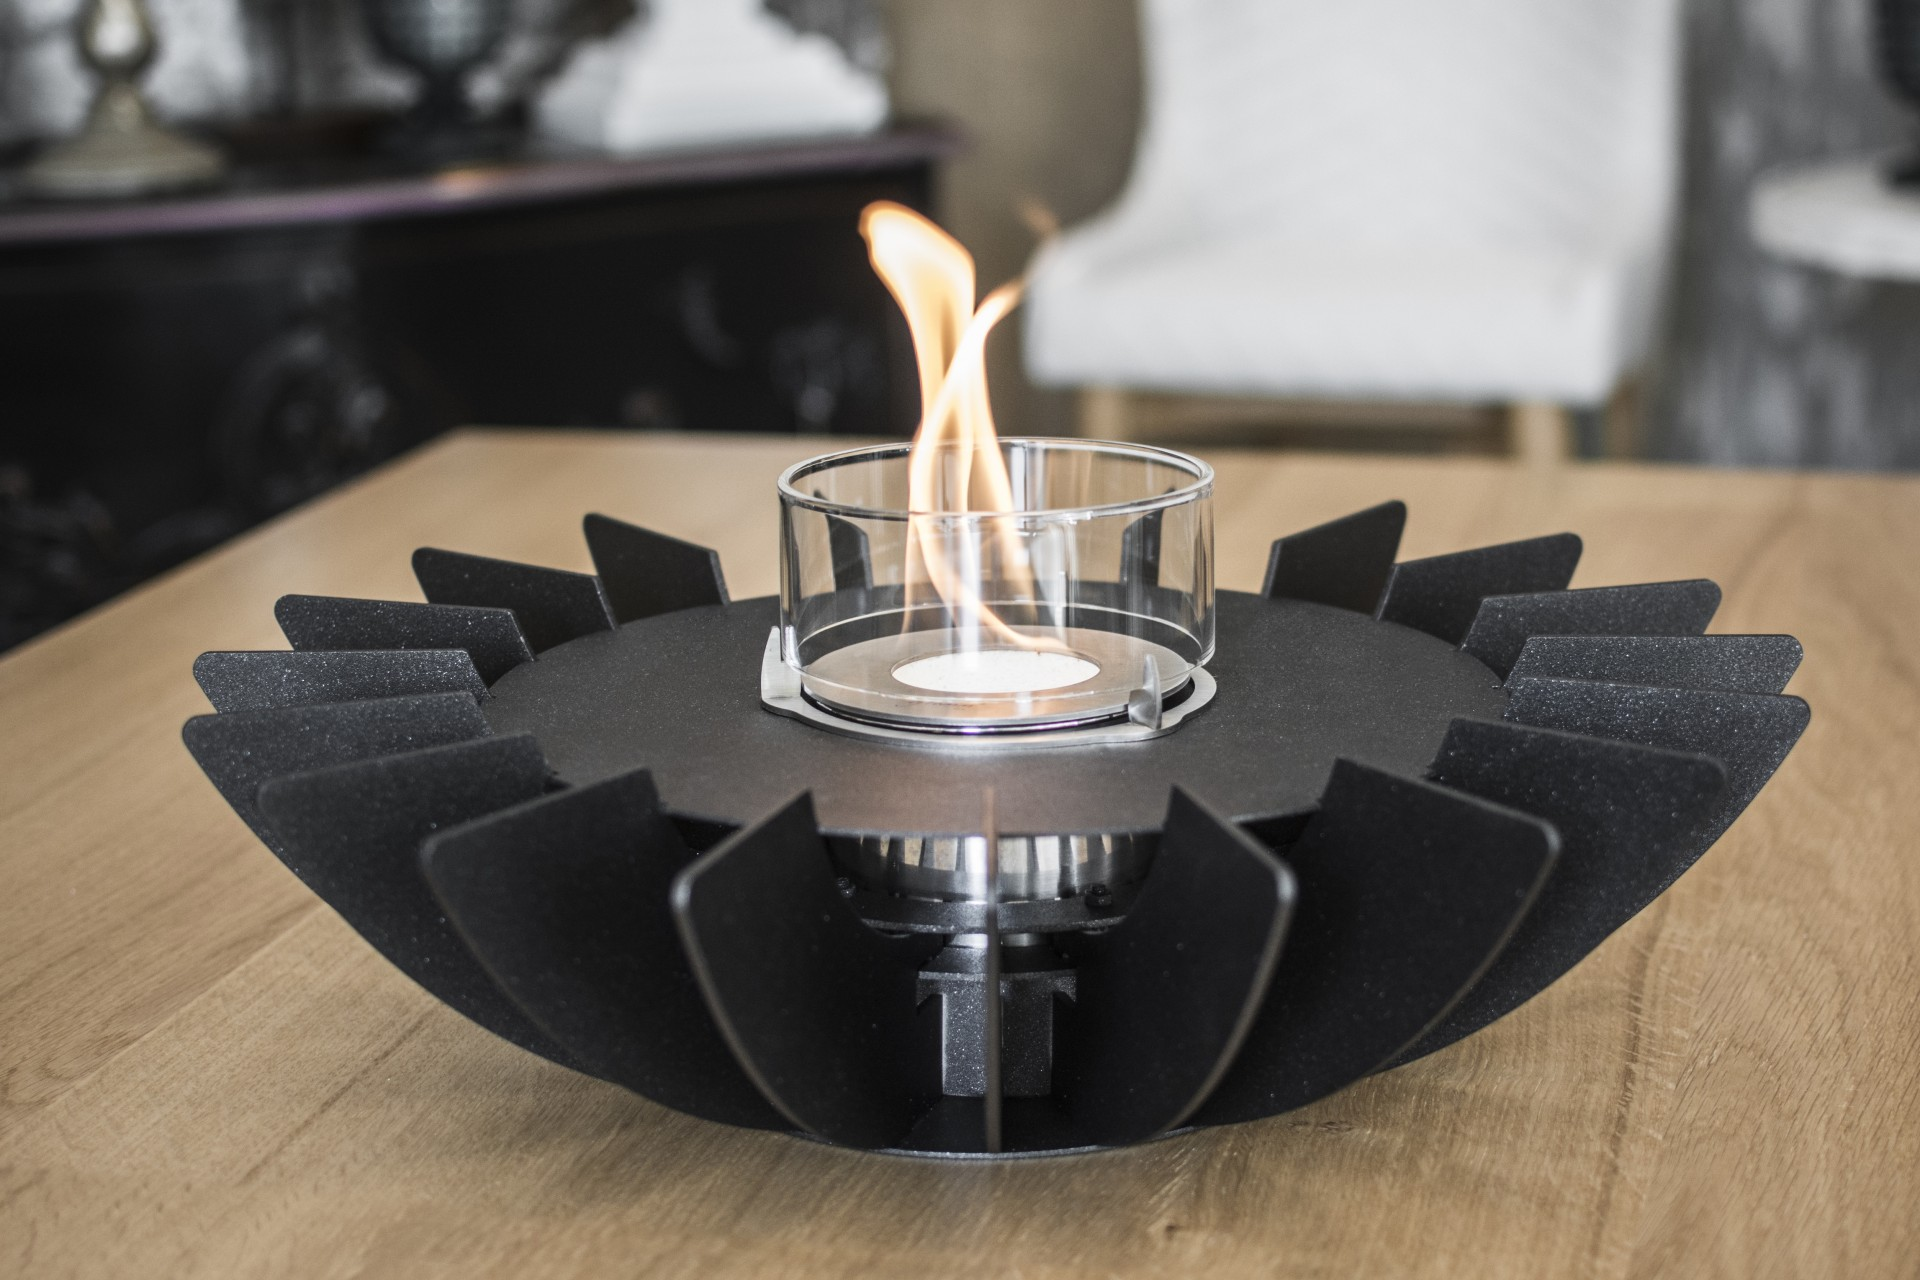 Tabletop Fireplaces | Nueva gama de chimeneas de mesa